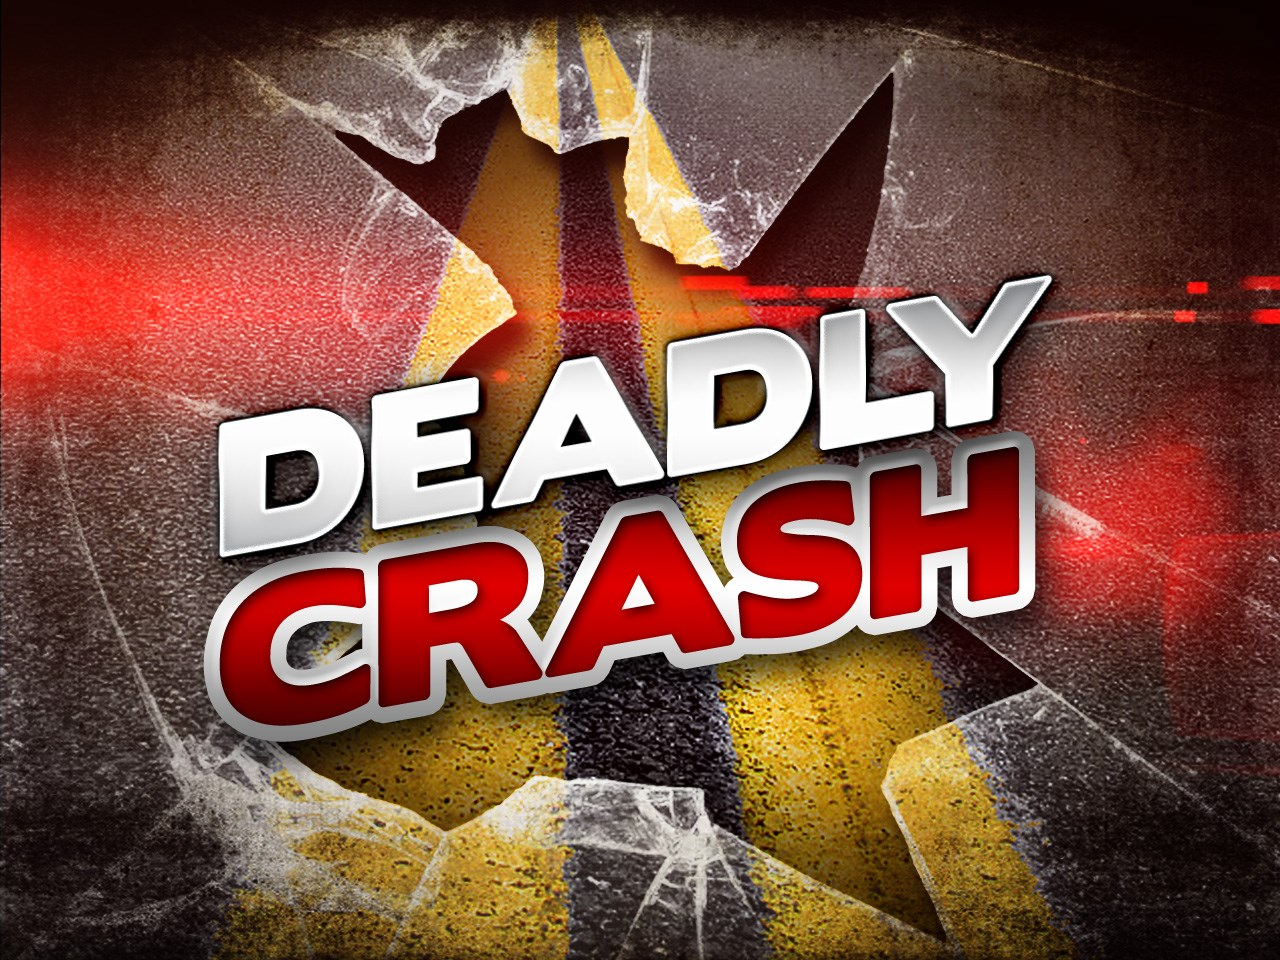 Police: 18-year-old woman died after being struck by a Commercial truck in Johnstown